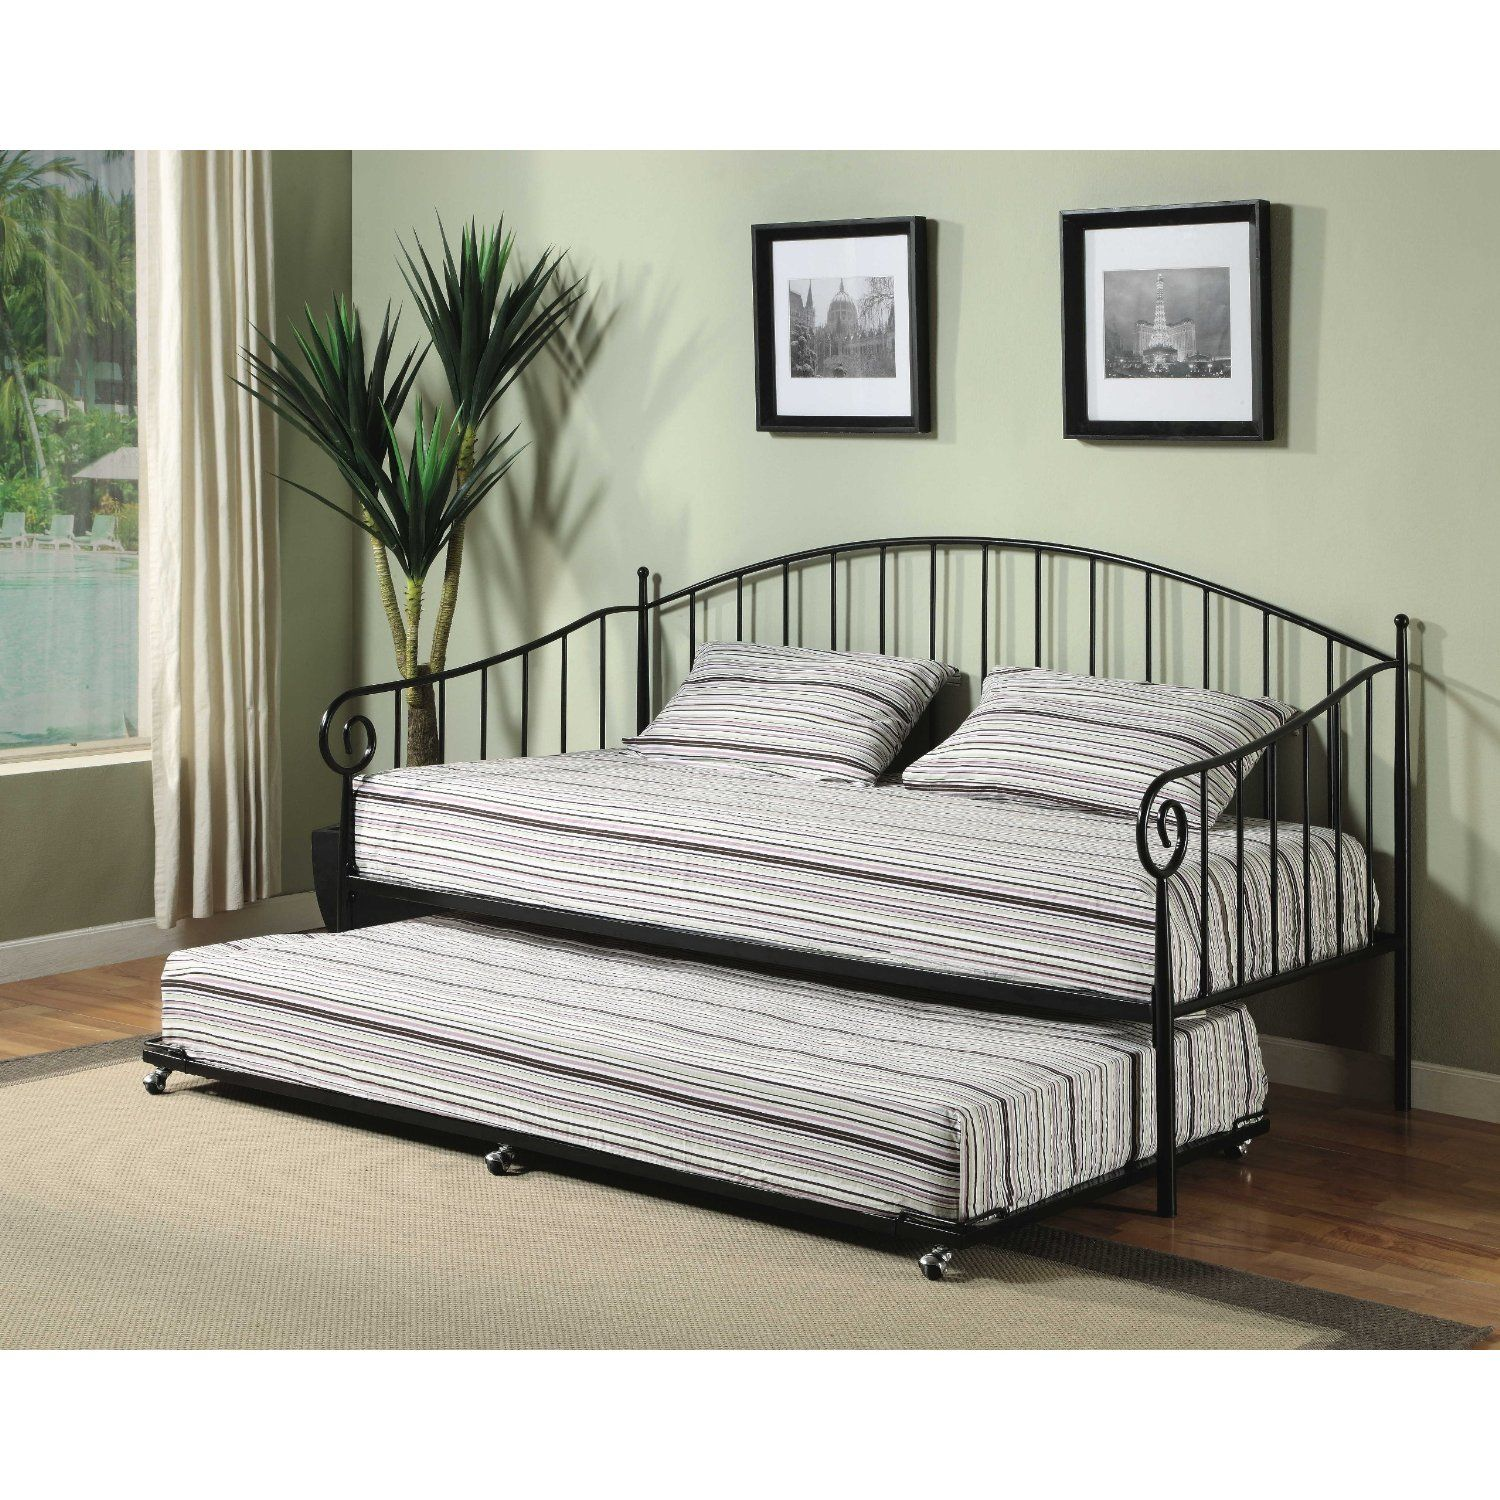 Pin By Madamedummy On Letto In 2019 Metal Daybed Daybed Daybed